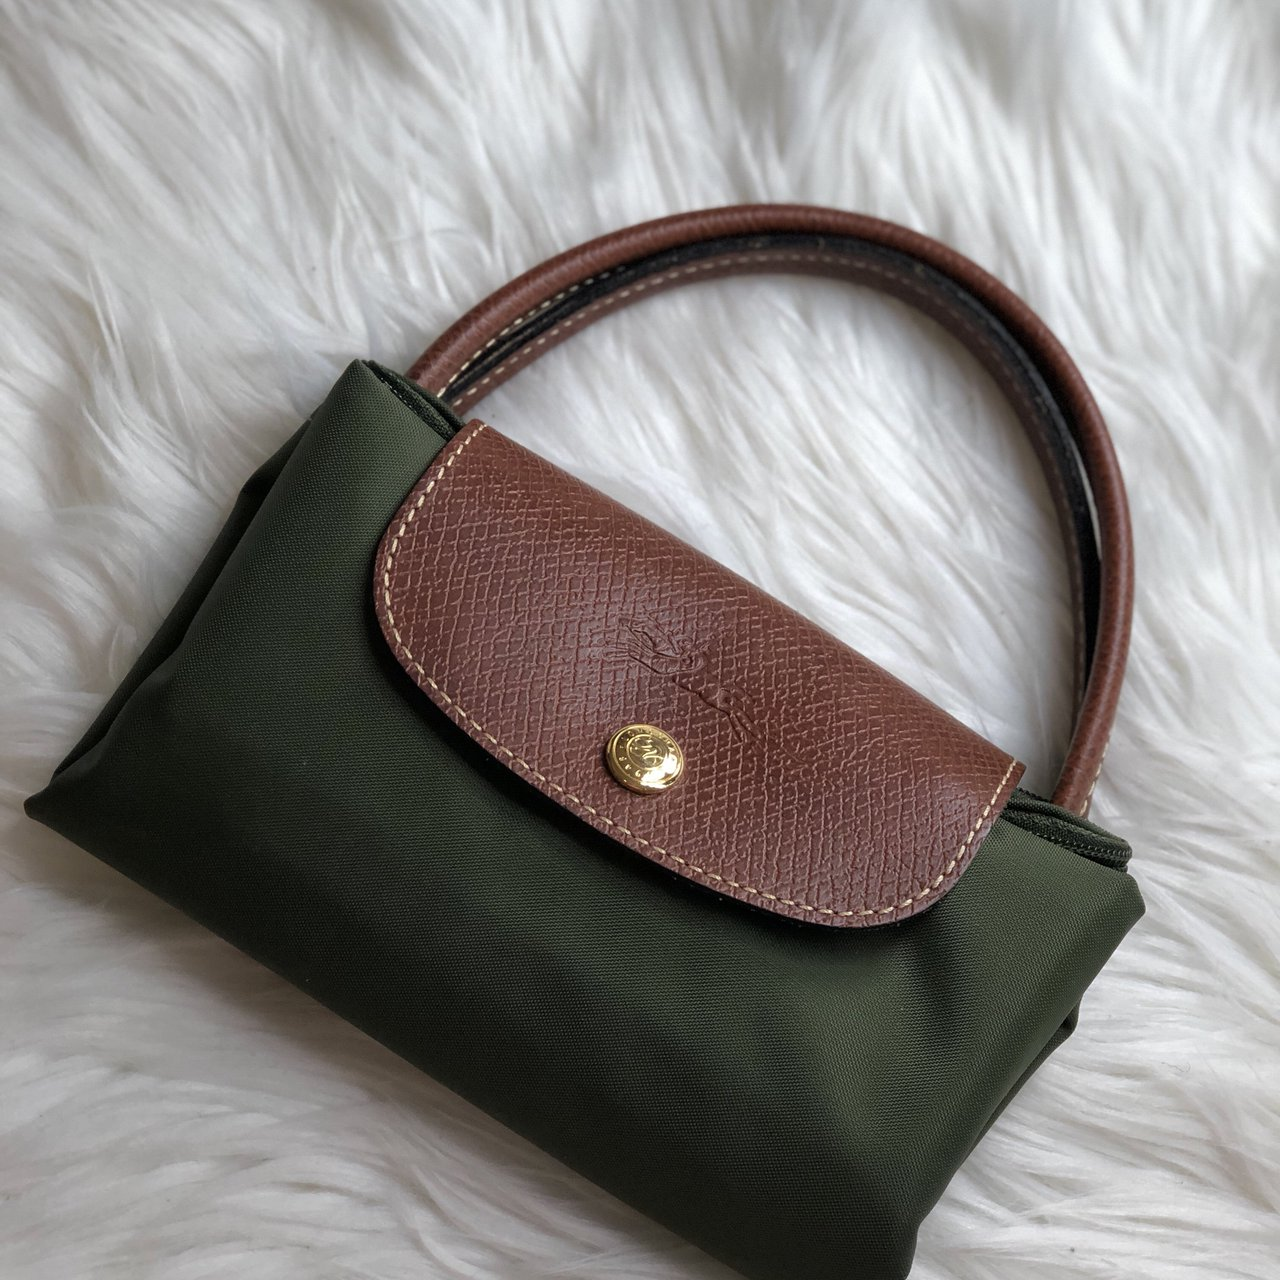 Longchamp Le Pilage tote Mini size in green. THIS IS NOT - Depop c2da3a525c756